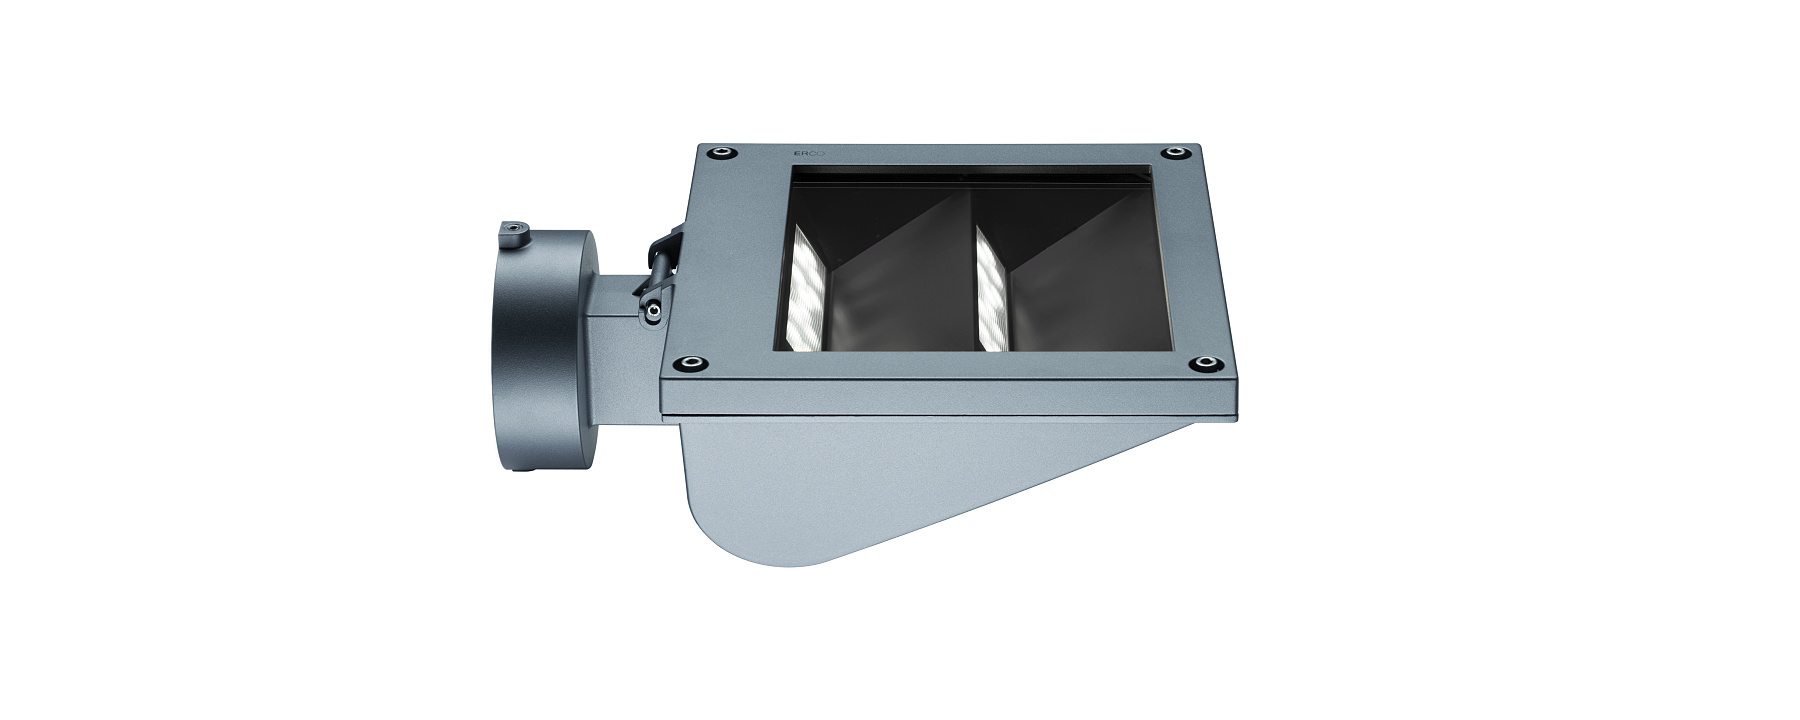 Lightscoop - Projectors, floodlights and wallwashers